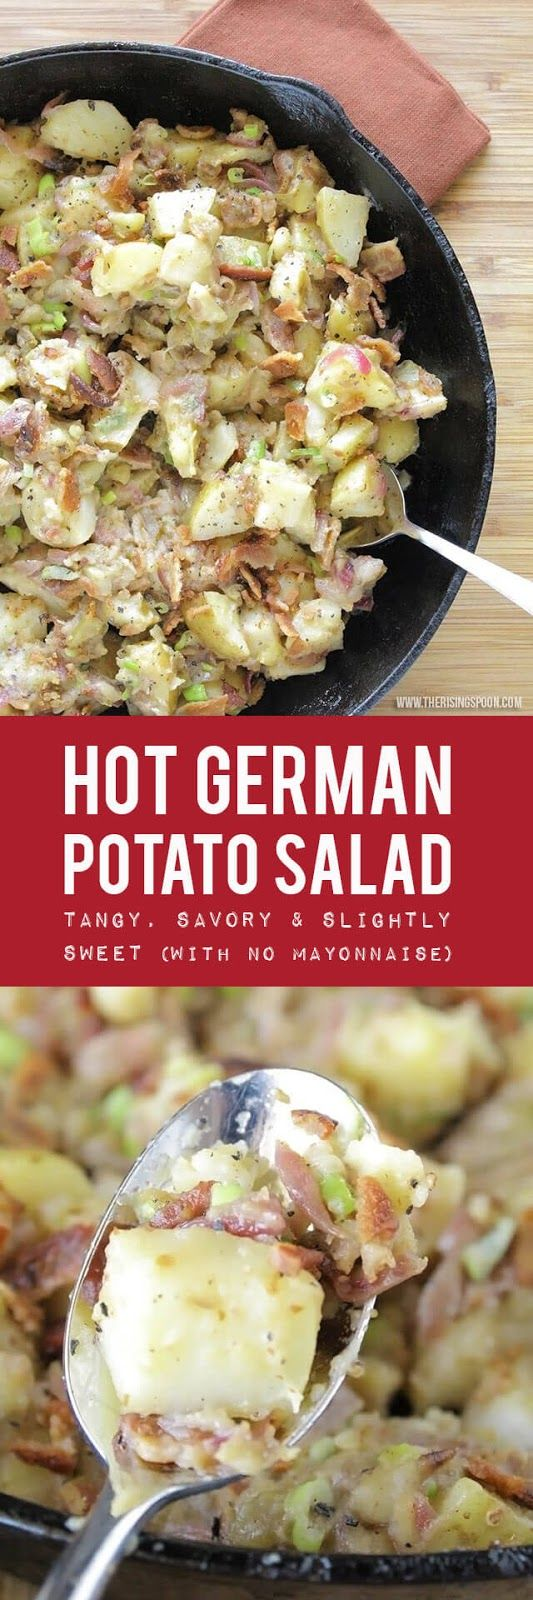 An Easy Hot German Potato Salad Recipe that's tangy, savory, and slightly sweet. A great alternative to normal mayo potato salad. | Gluten-free | Grain-Free | Dairy-Free | Real Food Recipes | Dinner